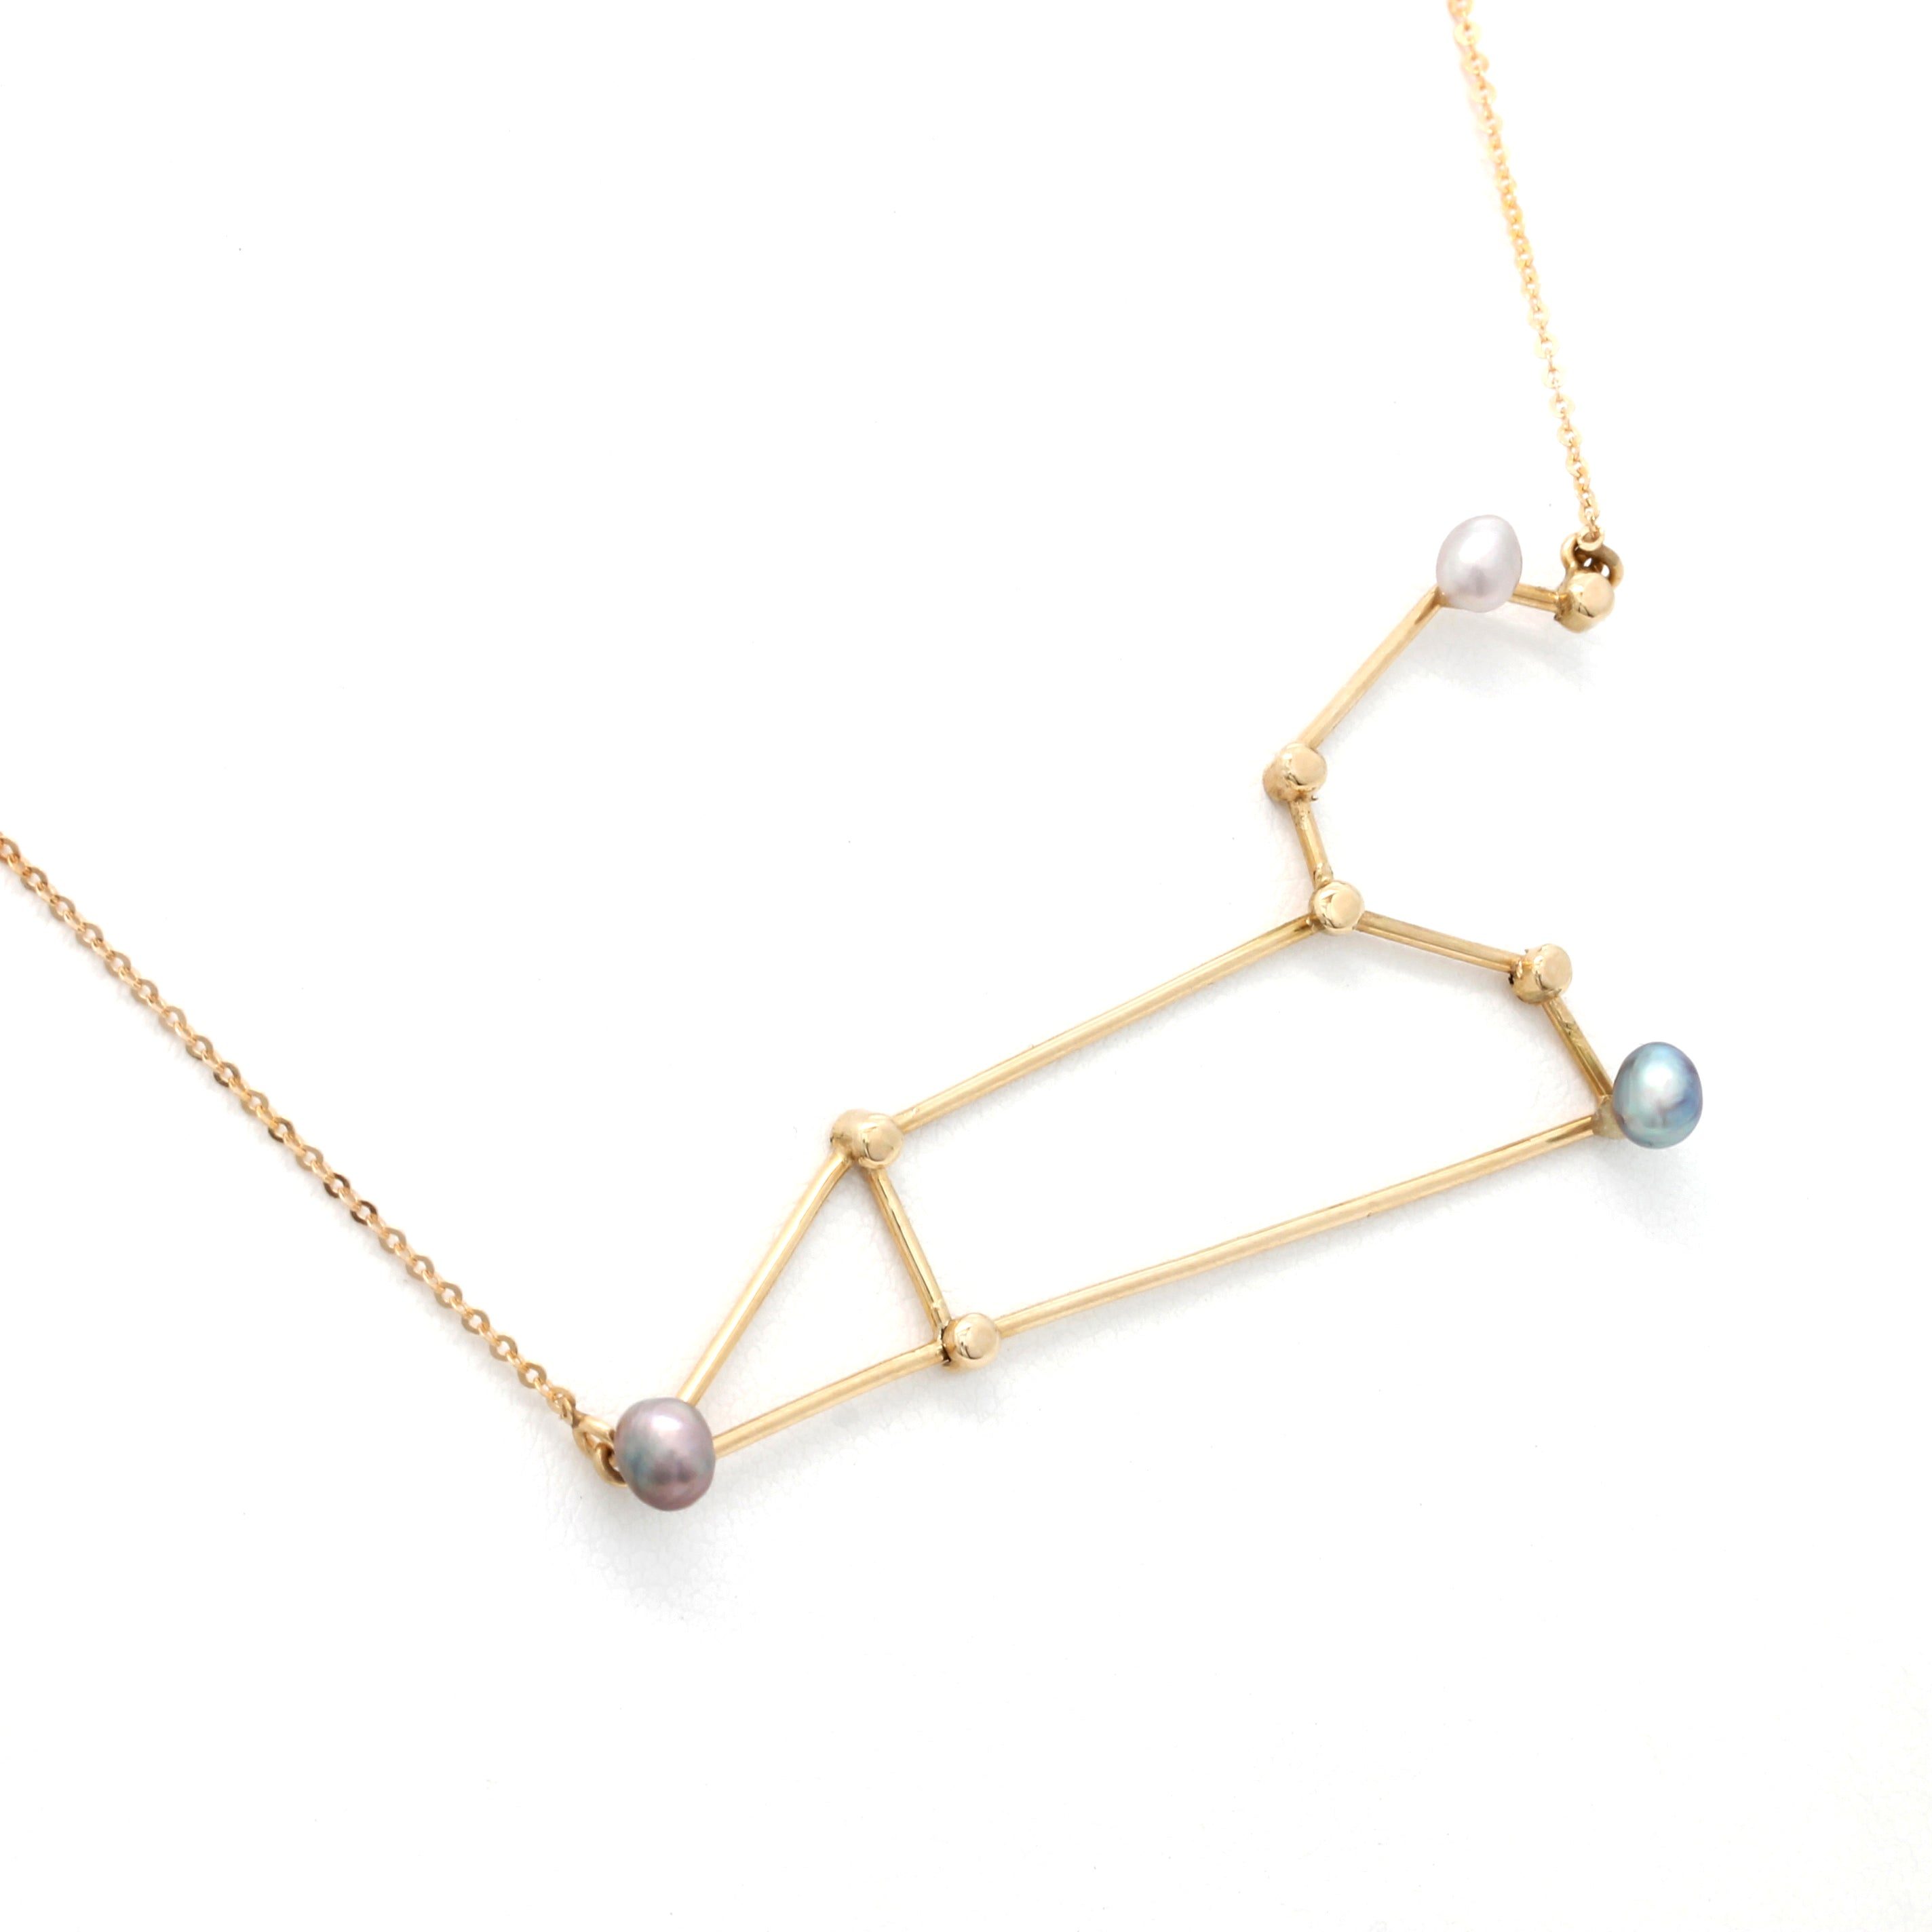 """Leo"" 14K Yellow Gold Pendant and Chain with Cortez Keshi Pearls"